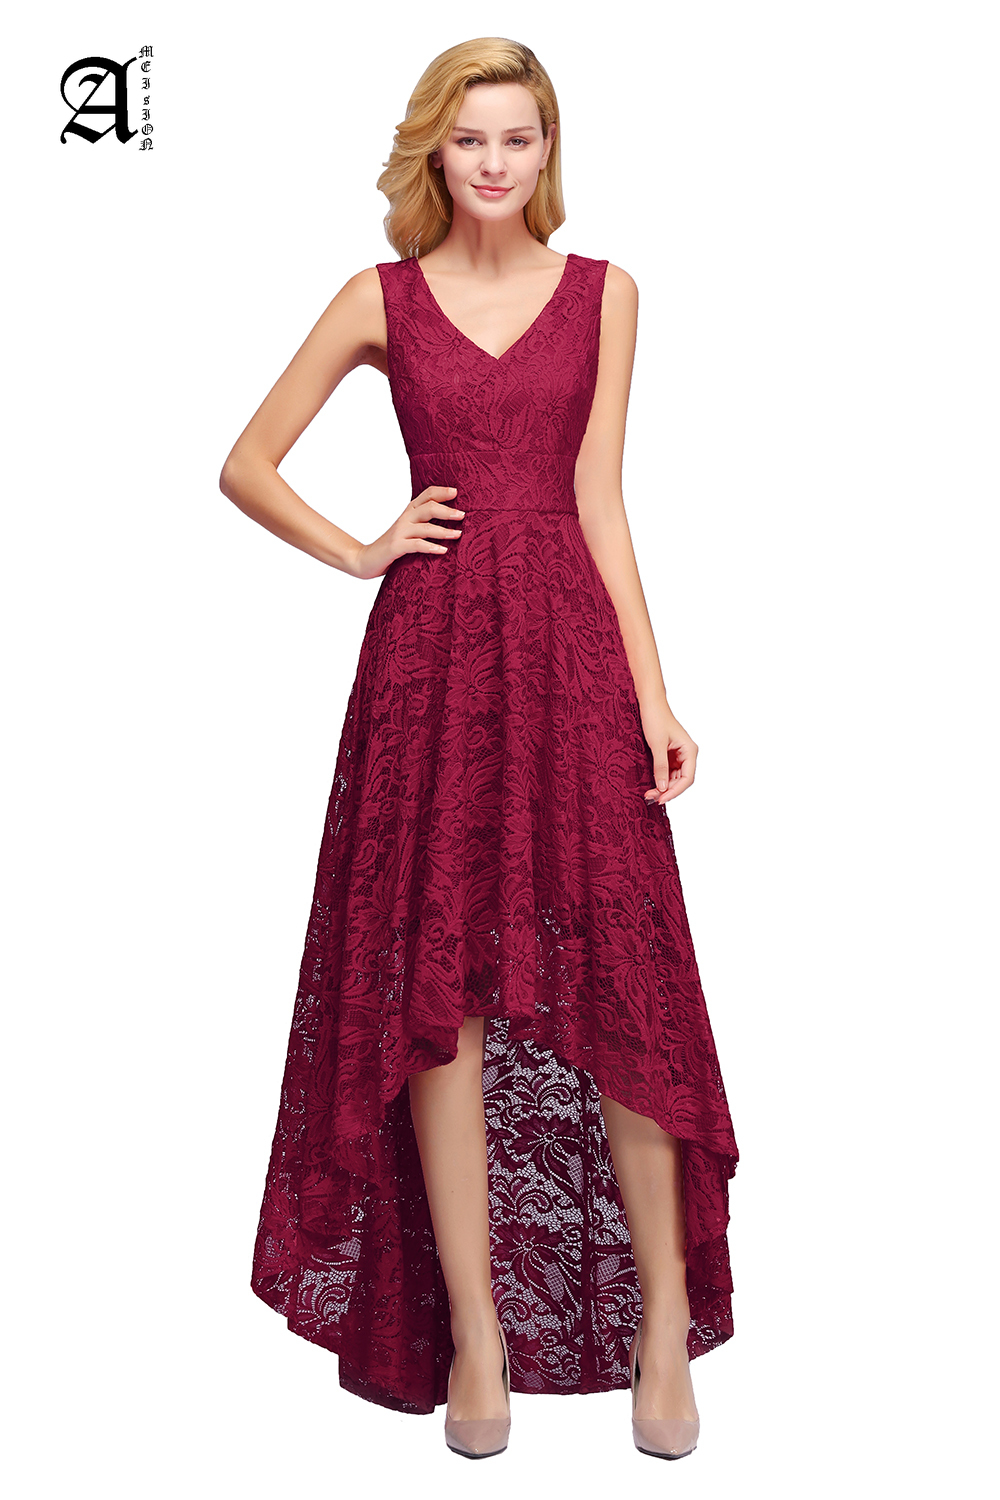 Elegant Burgundy Sexy Lace Short Evening Dress 2019 Plus Size  Gown